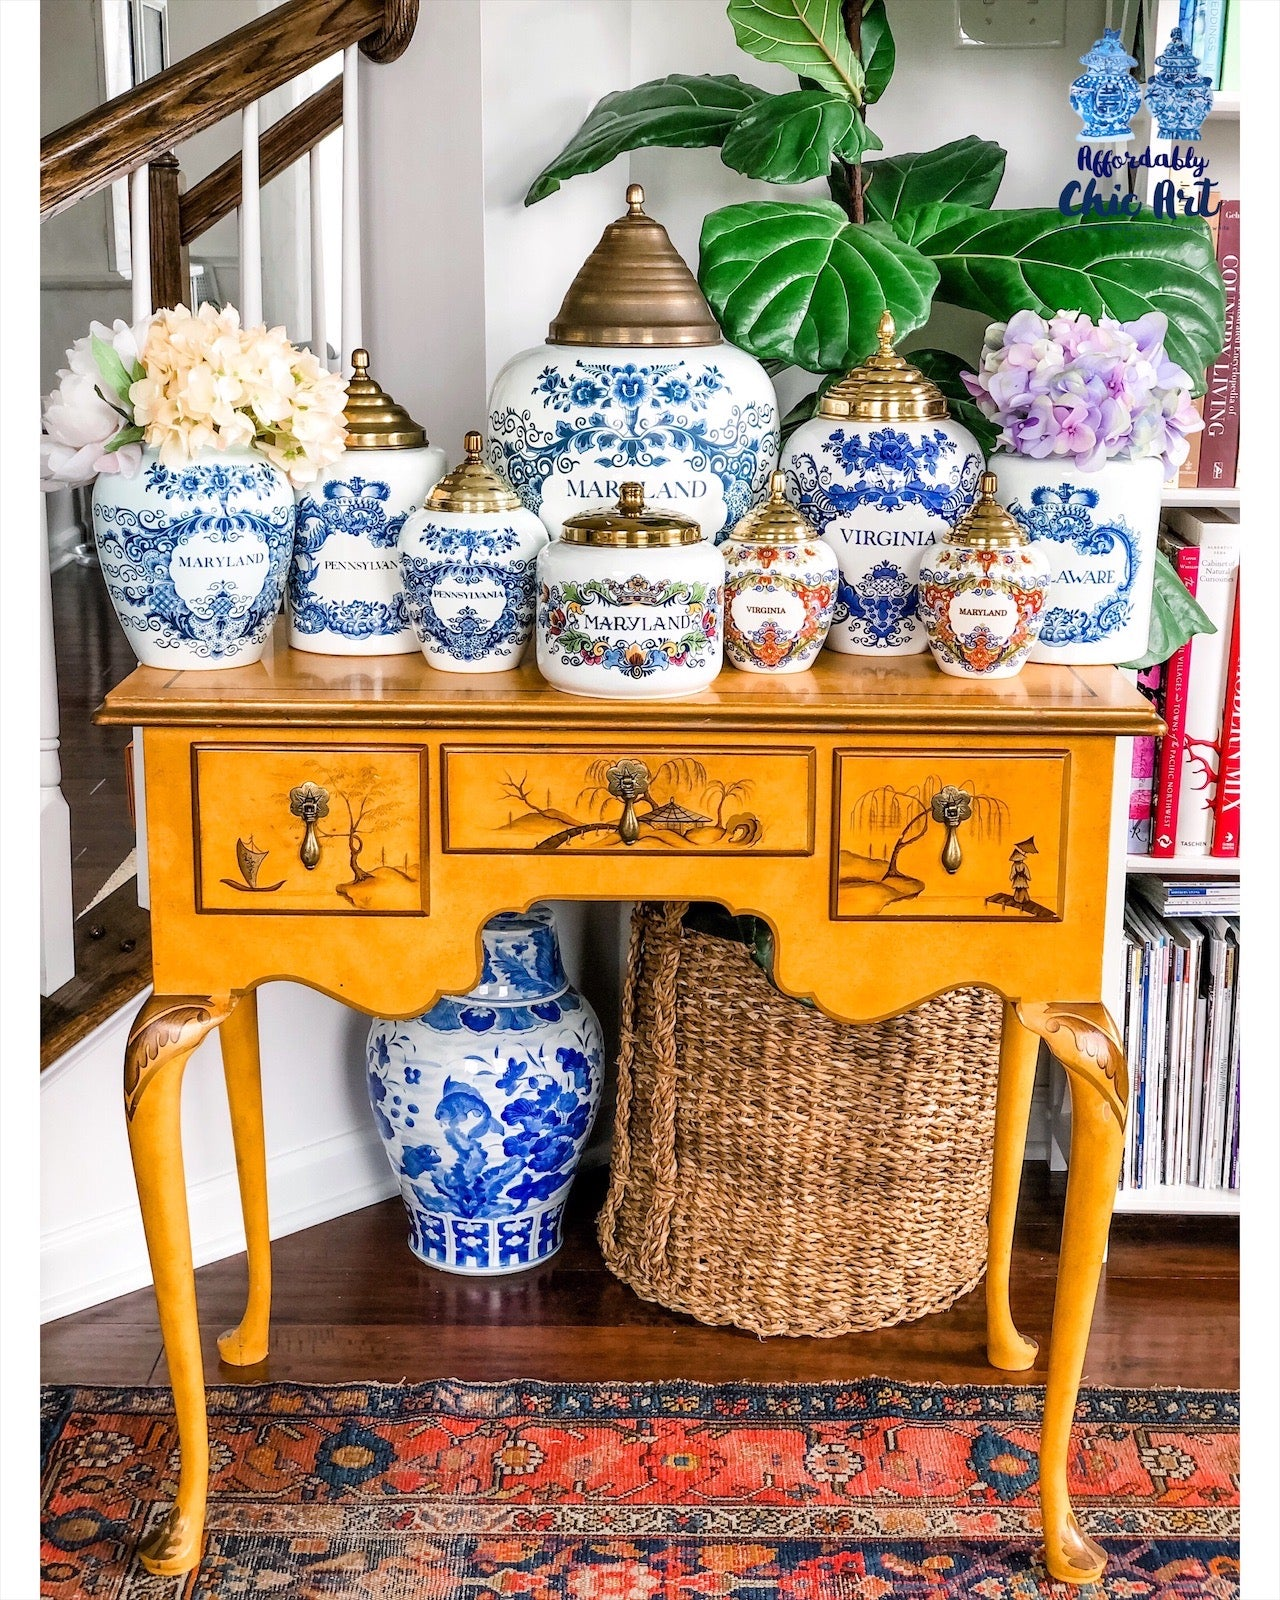 SUPER DELFT SATURDAY: Vintage Delft State Tobacco Jar Event Saturday, 5/16 @ 10 AM EST!